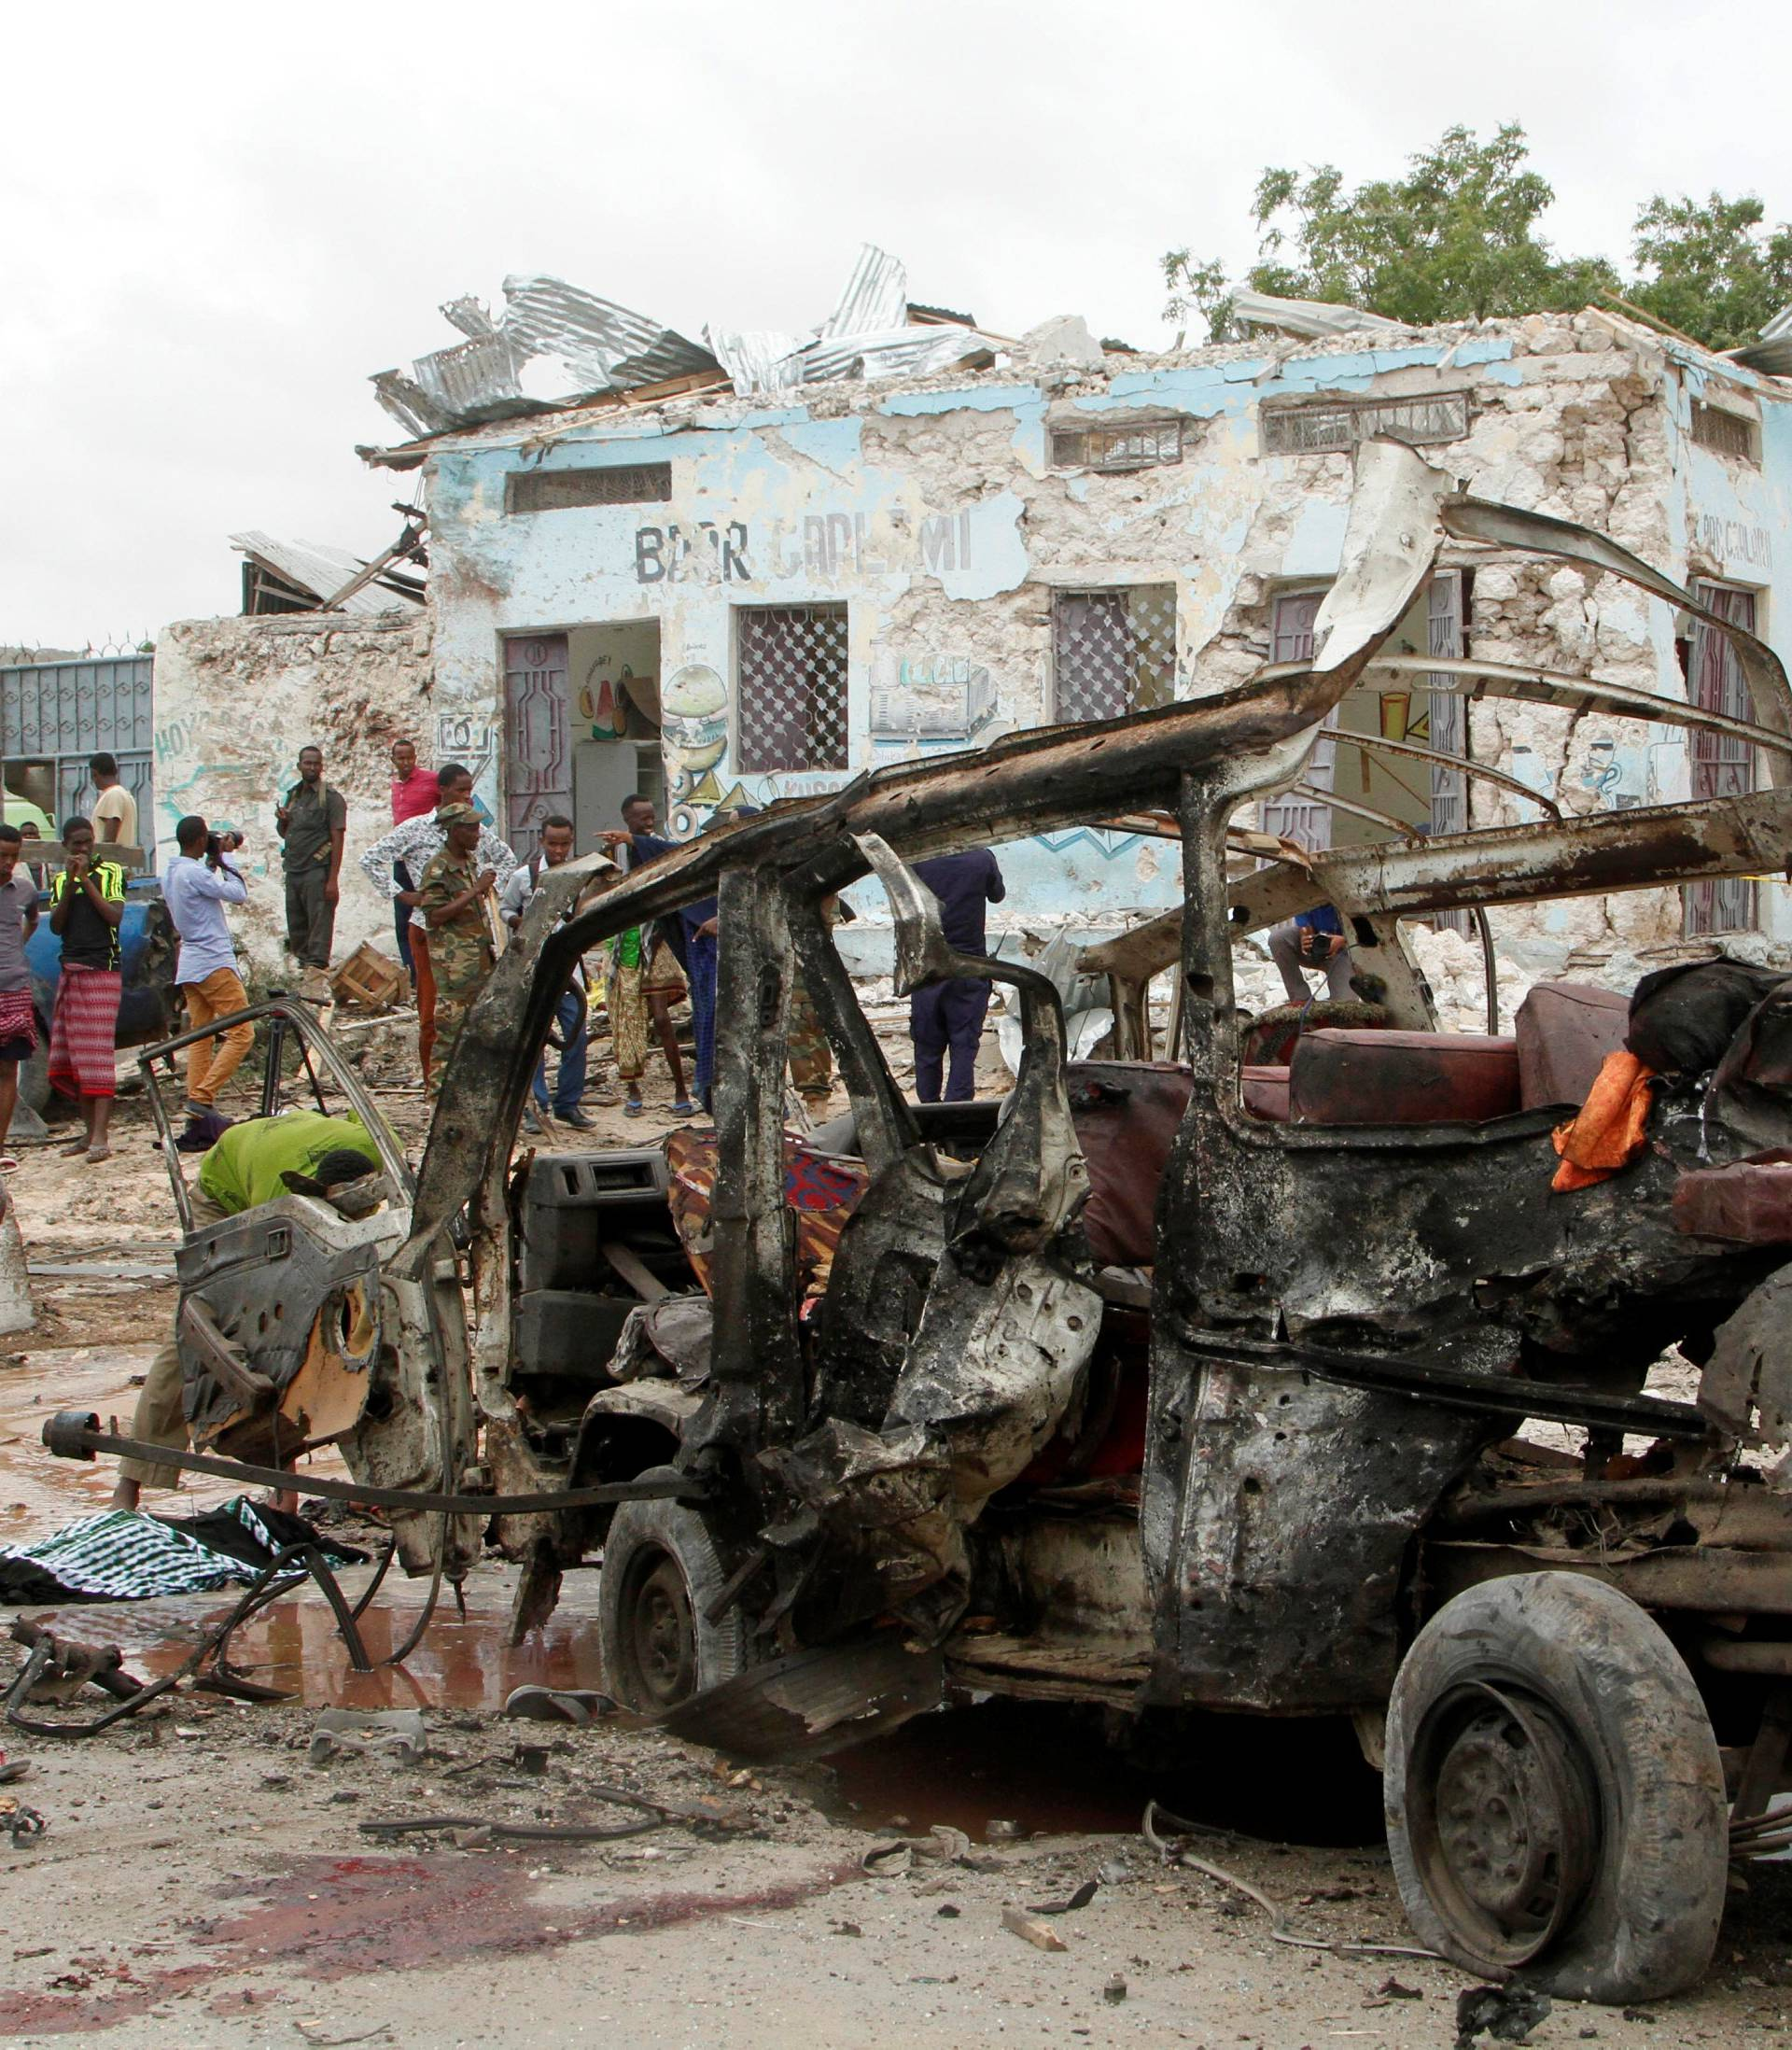 Civilians remove the body of an unidentified man from the wreckage of a minibus at the scene of an explosion near  a military base in Somalia's capital Mogadishu